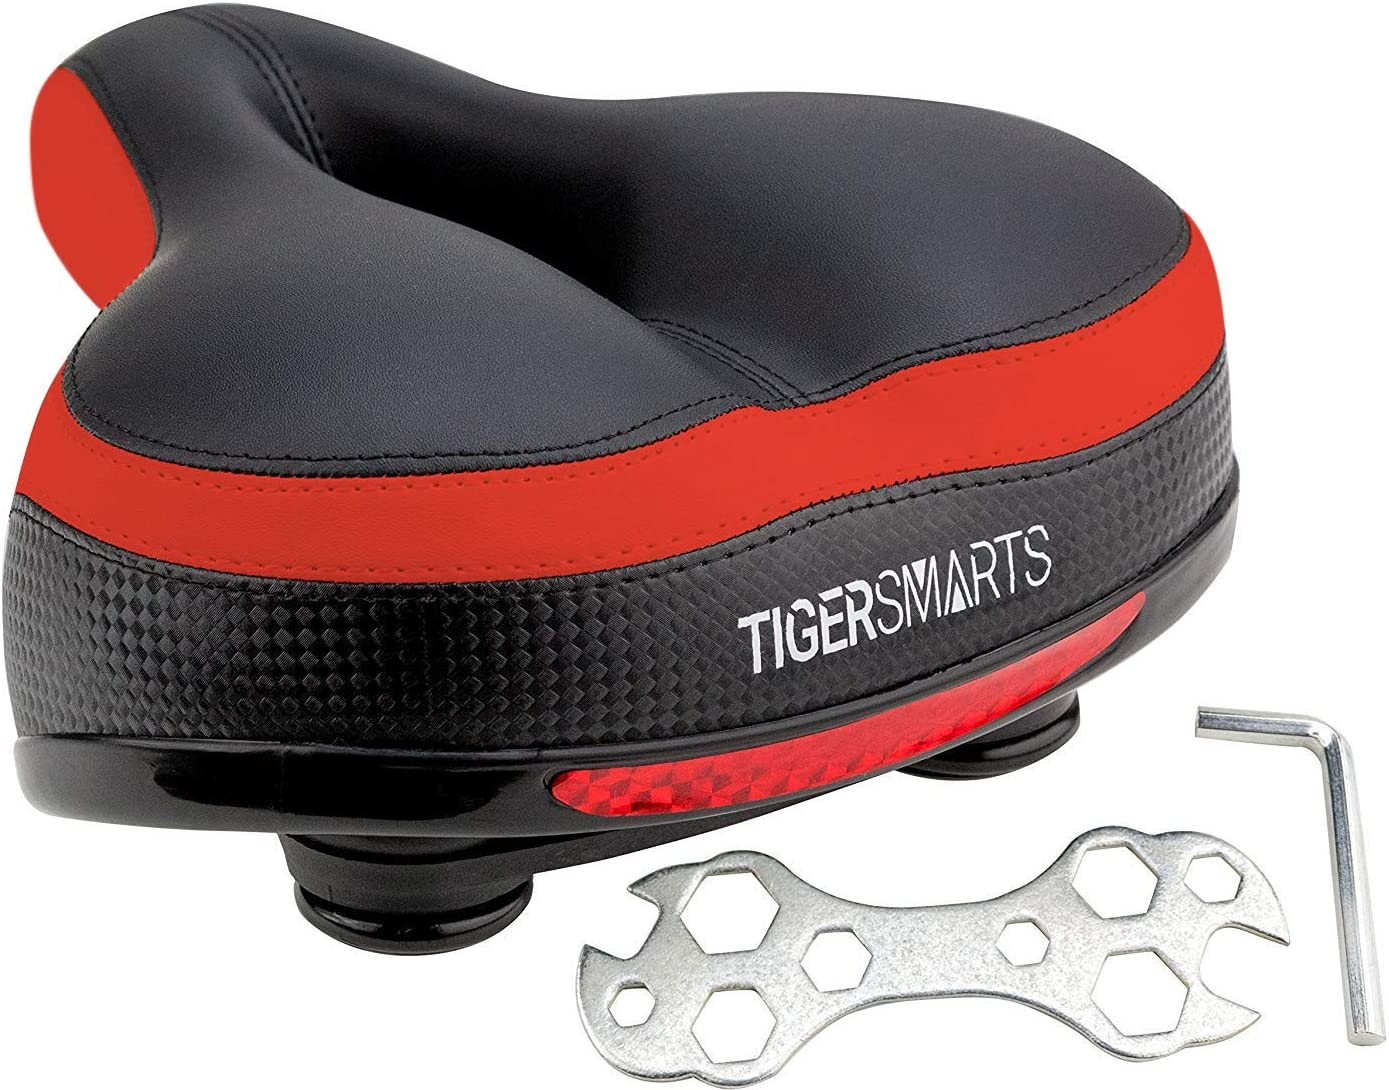 TIGERSMARTS Bike Seat Replacement discount Sea Padded New product! New type Comfortable Bicycle